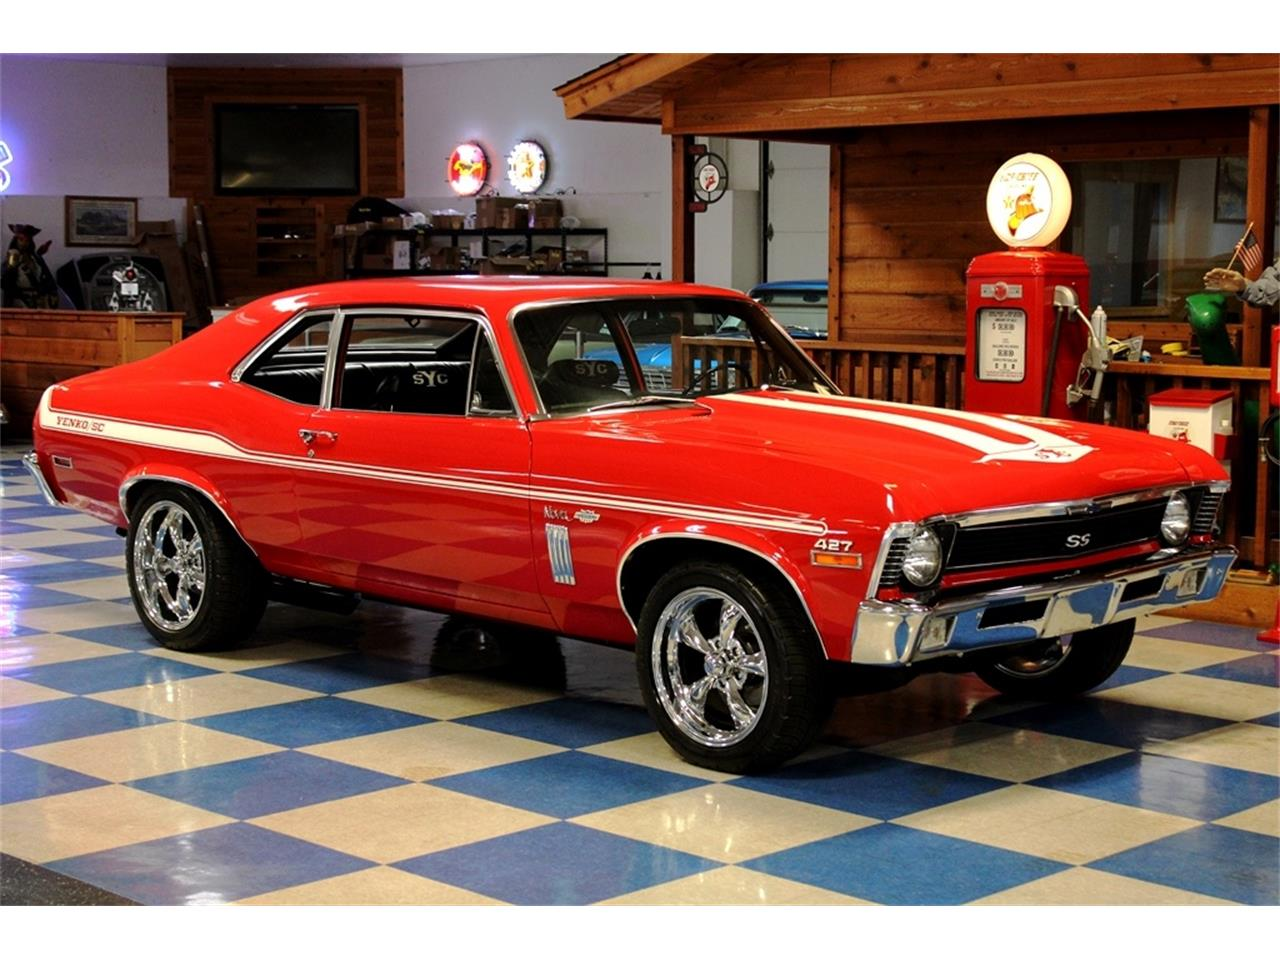 Large Picture of 1970 Nova located in New Braunfels  Texas - $36,900.00 Offered by A&E Classic Cars - QQJ3